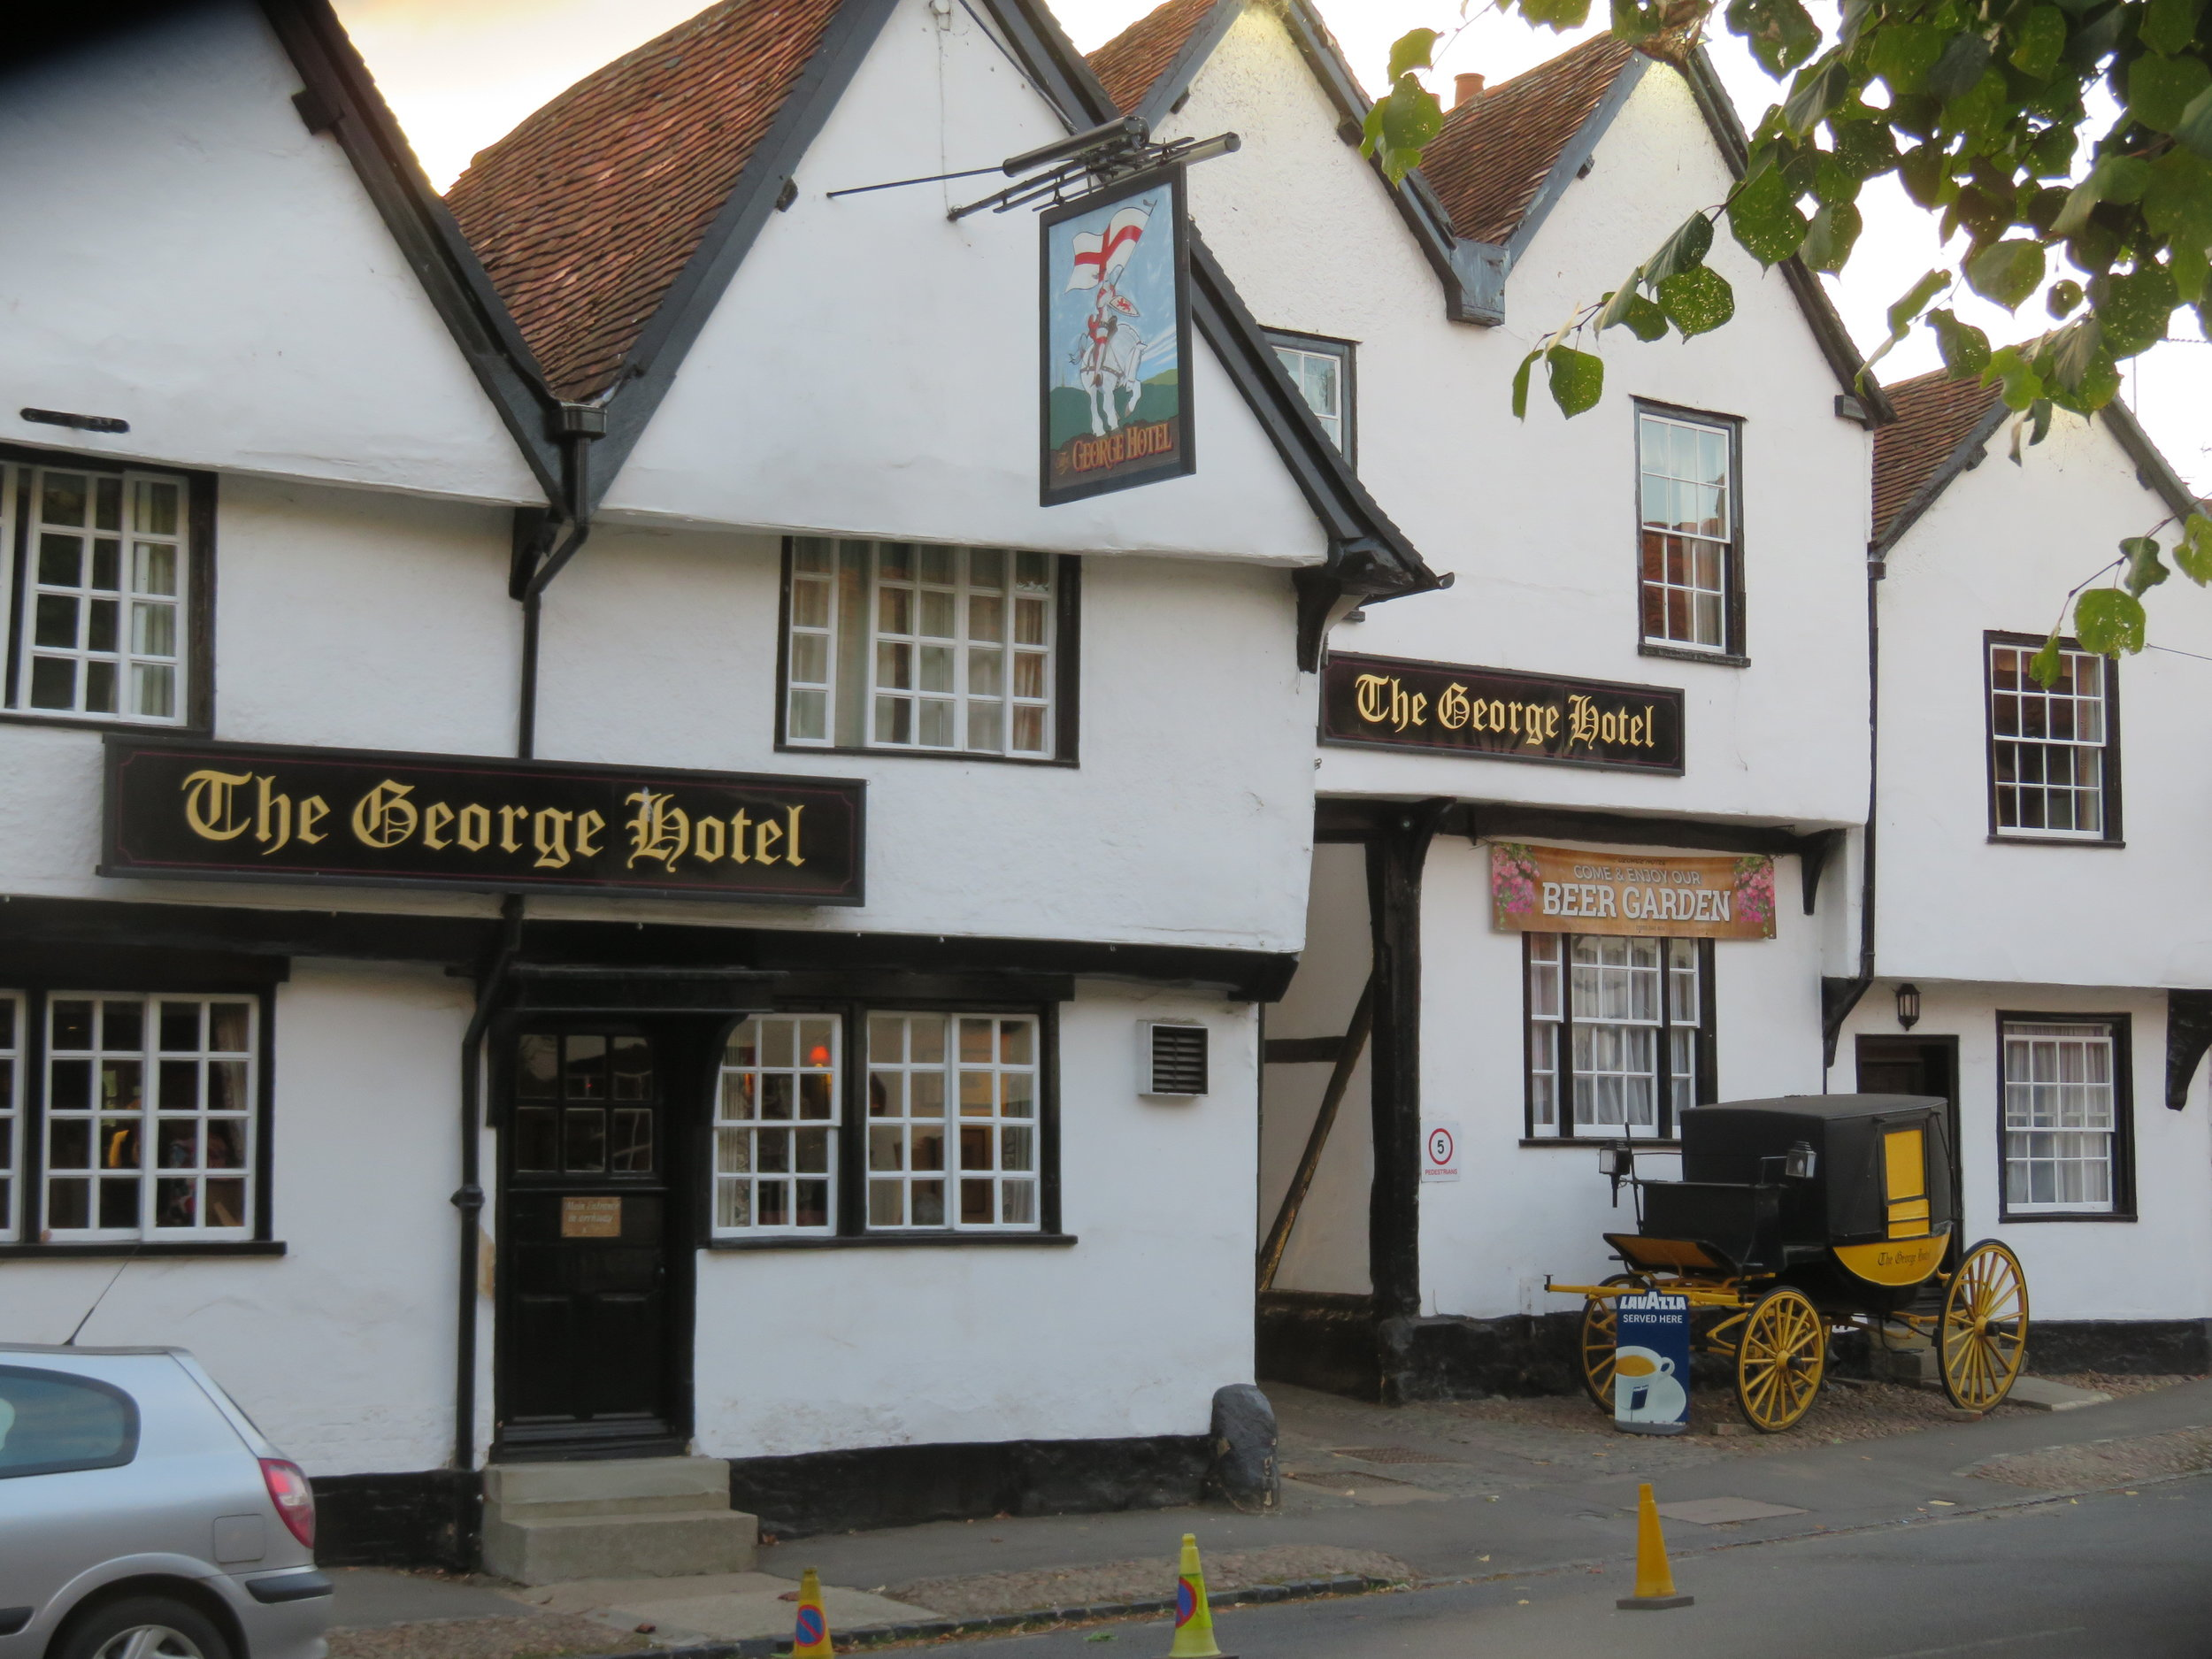 The George, a 15th century coaching inn